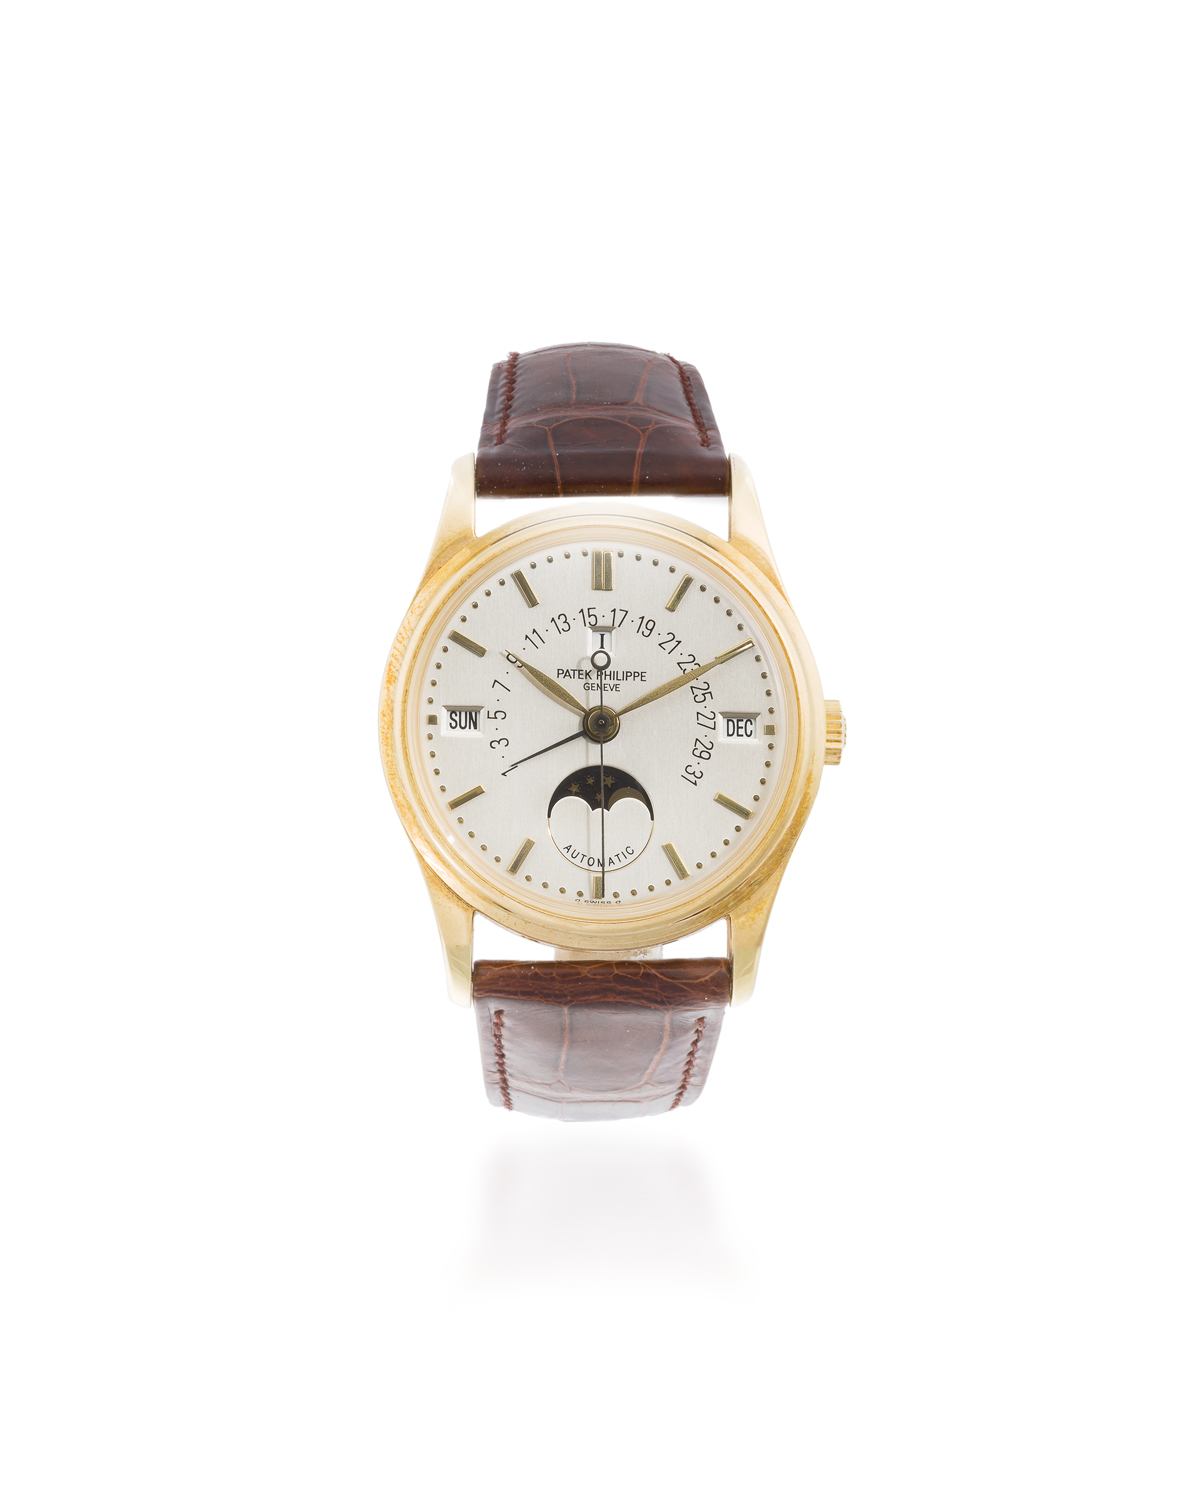 A Patek Philippe 18k Yellow Gold Perpetual Calendar Wristwatch